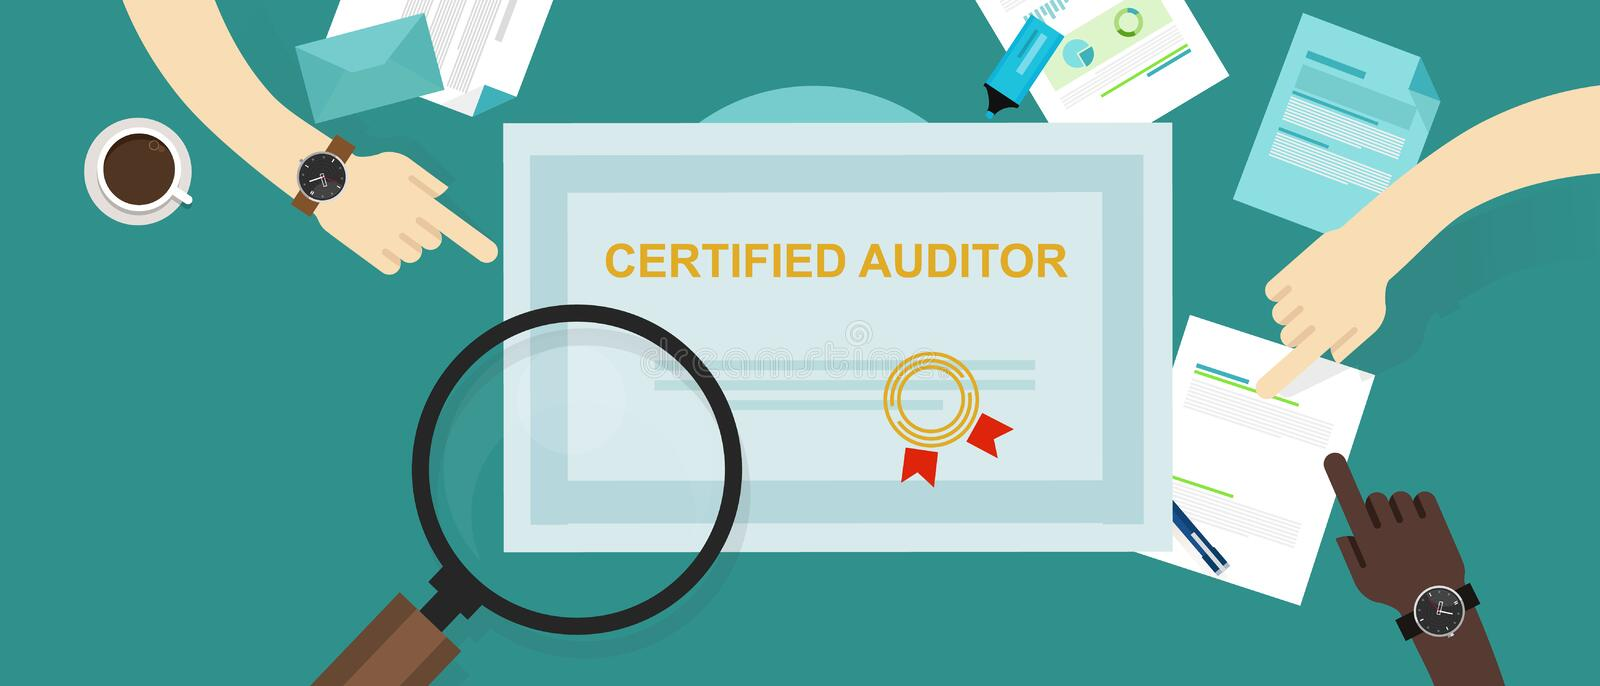 Certified auditor in internal financial certification and information technology company hand working on data with stock illustration